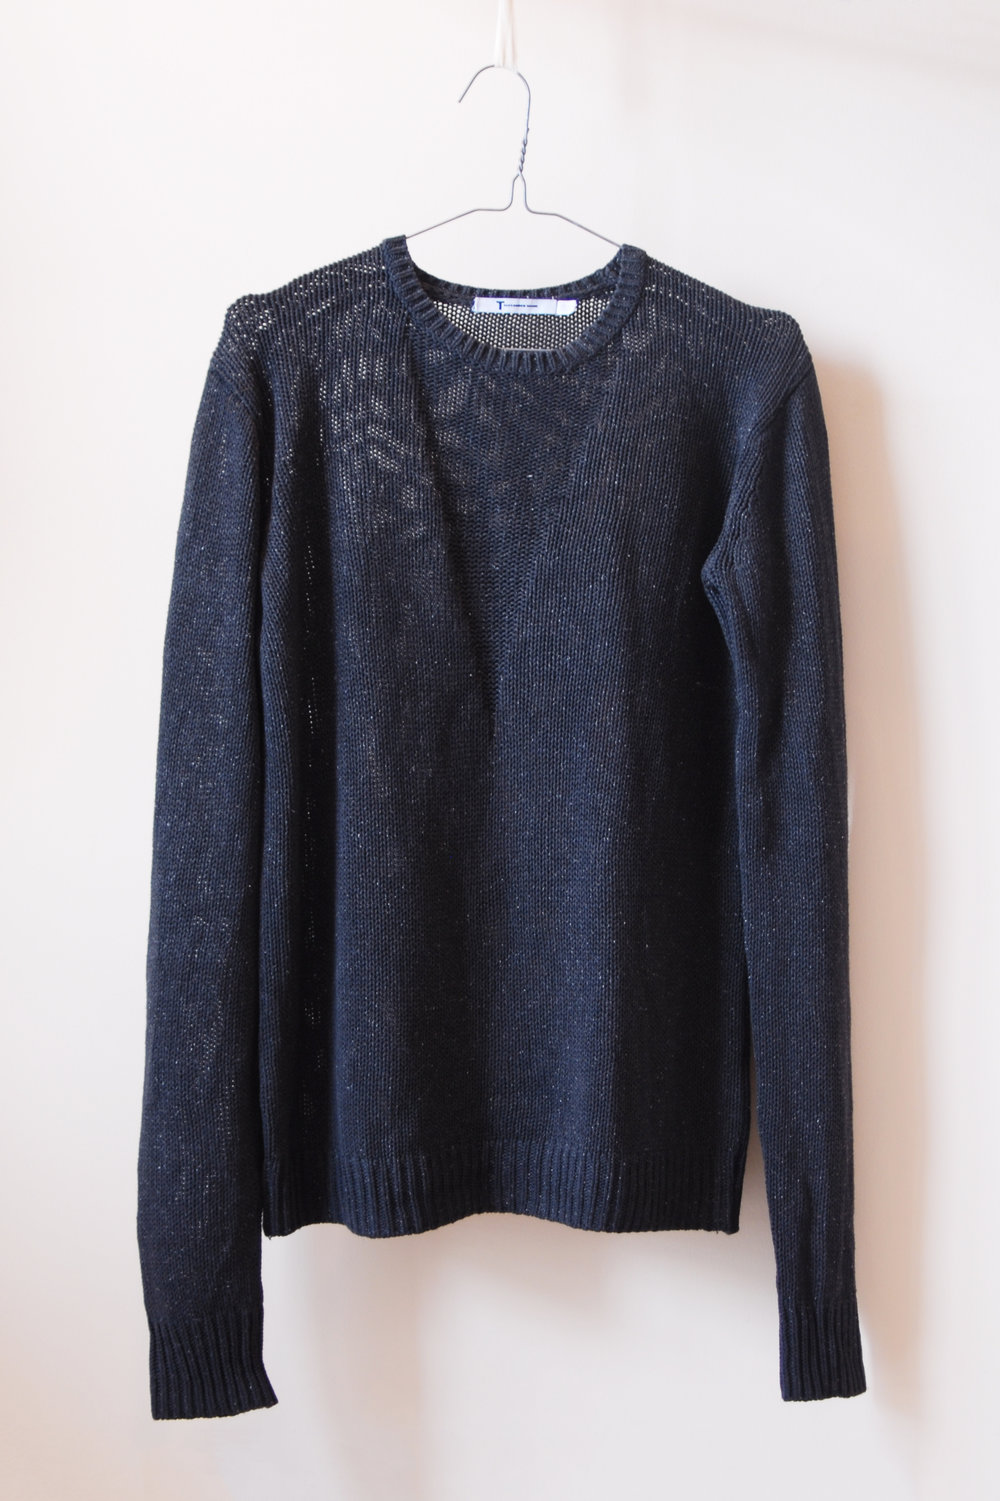 Alex Wang Sweater.jpg